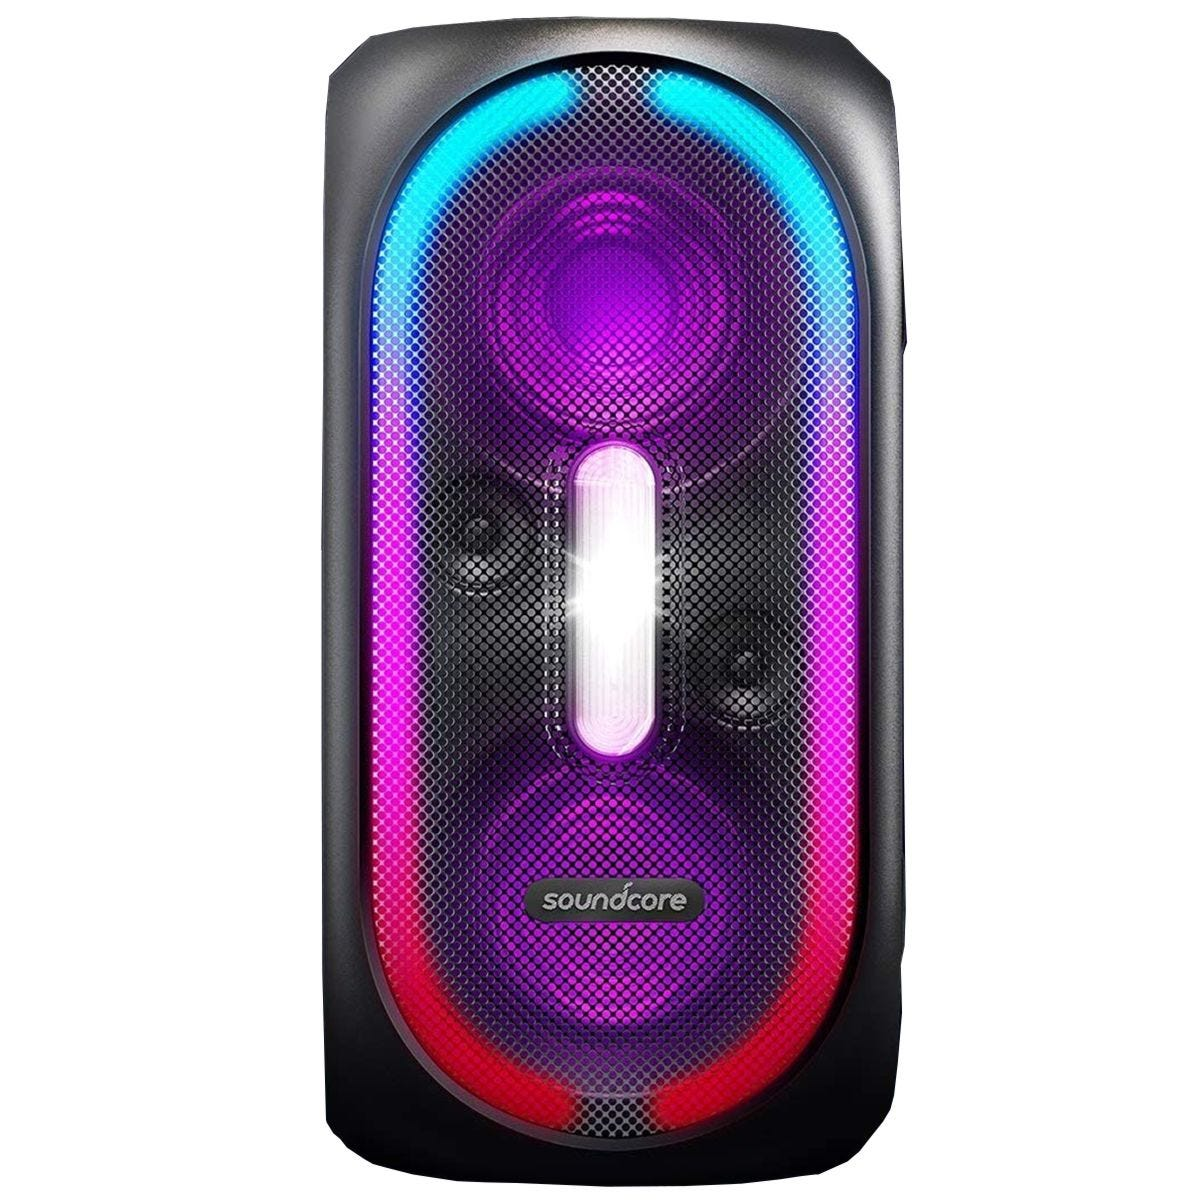 Soundcore Rave Portable Party-Proof Speaker with Body Shaking Bass, Light Show, 24-Hour Playtime & PowerIQ - Black